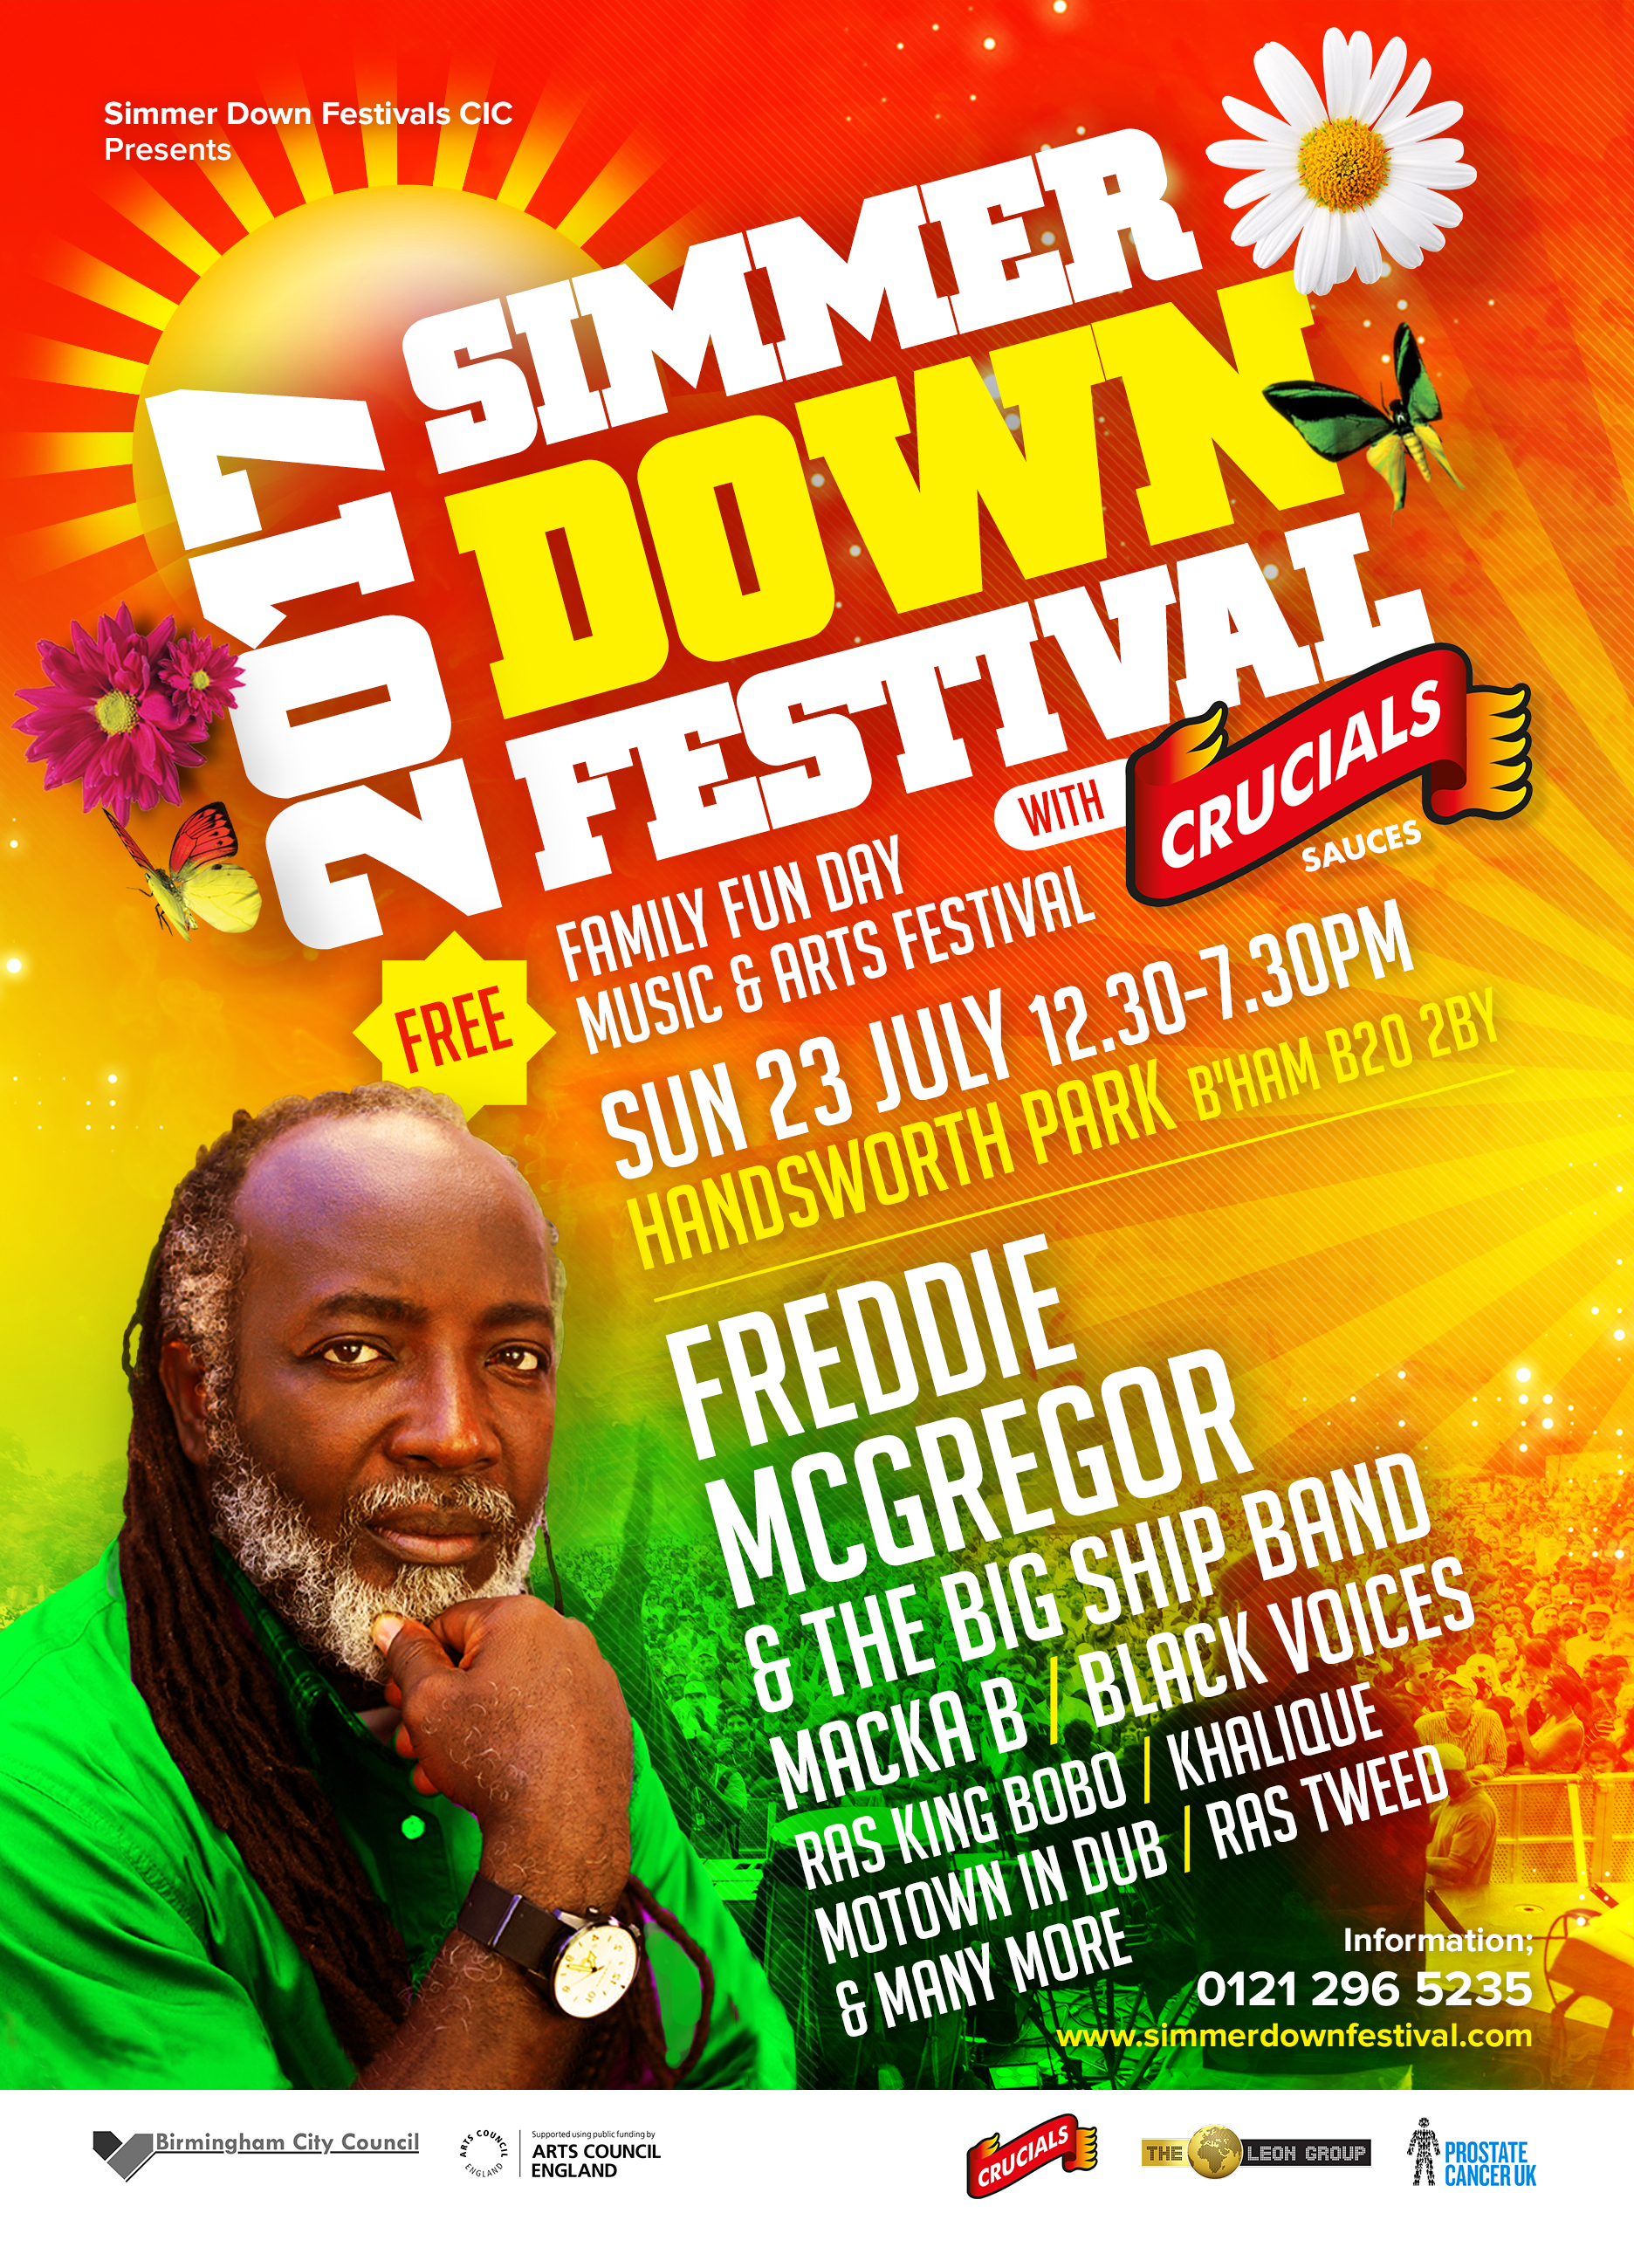 Simmer Down Festival - 23rd July Handsworth Park